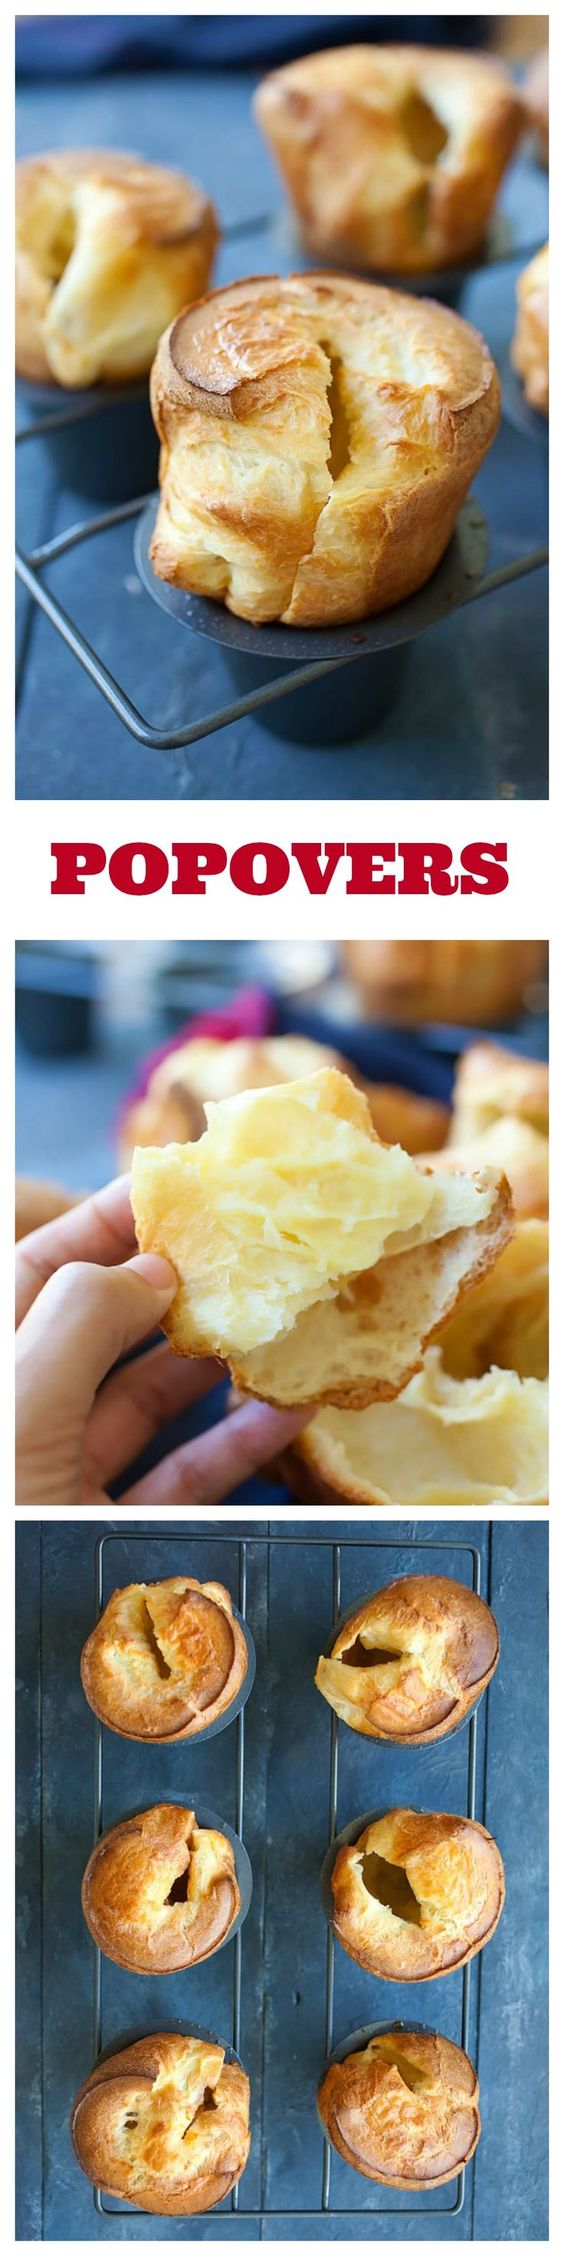 Popovers – American version of Yorkshire pudding. Popovers are ...